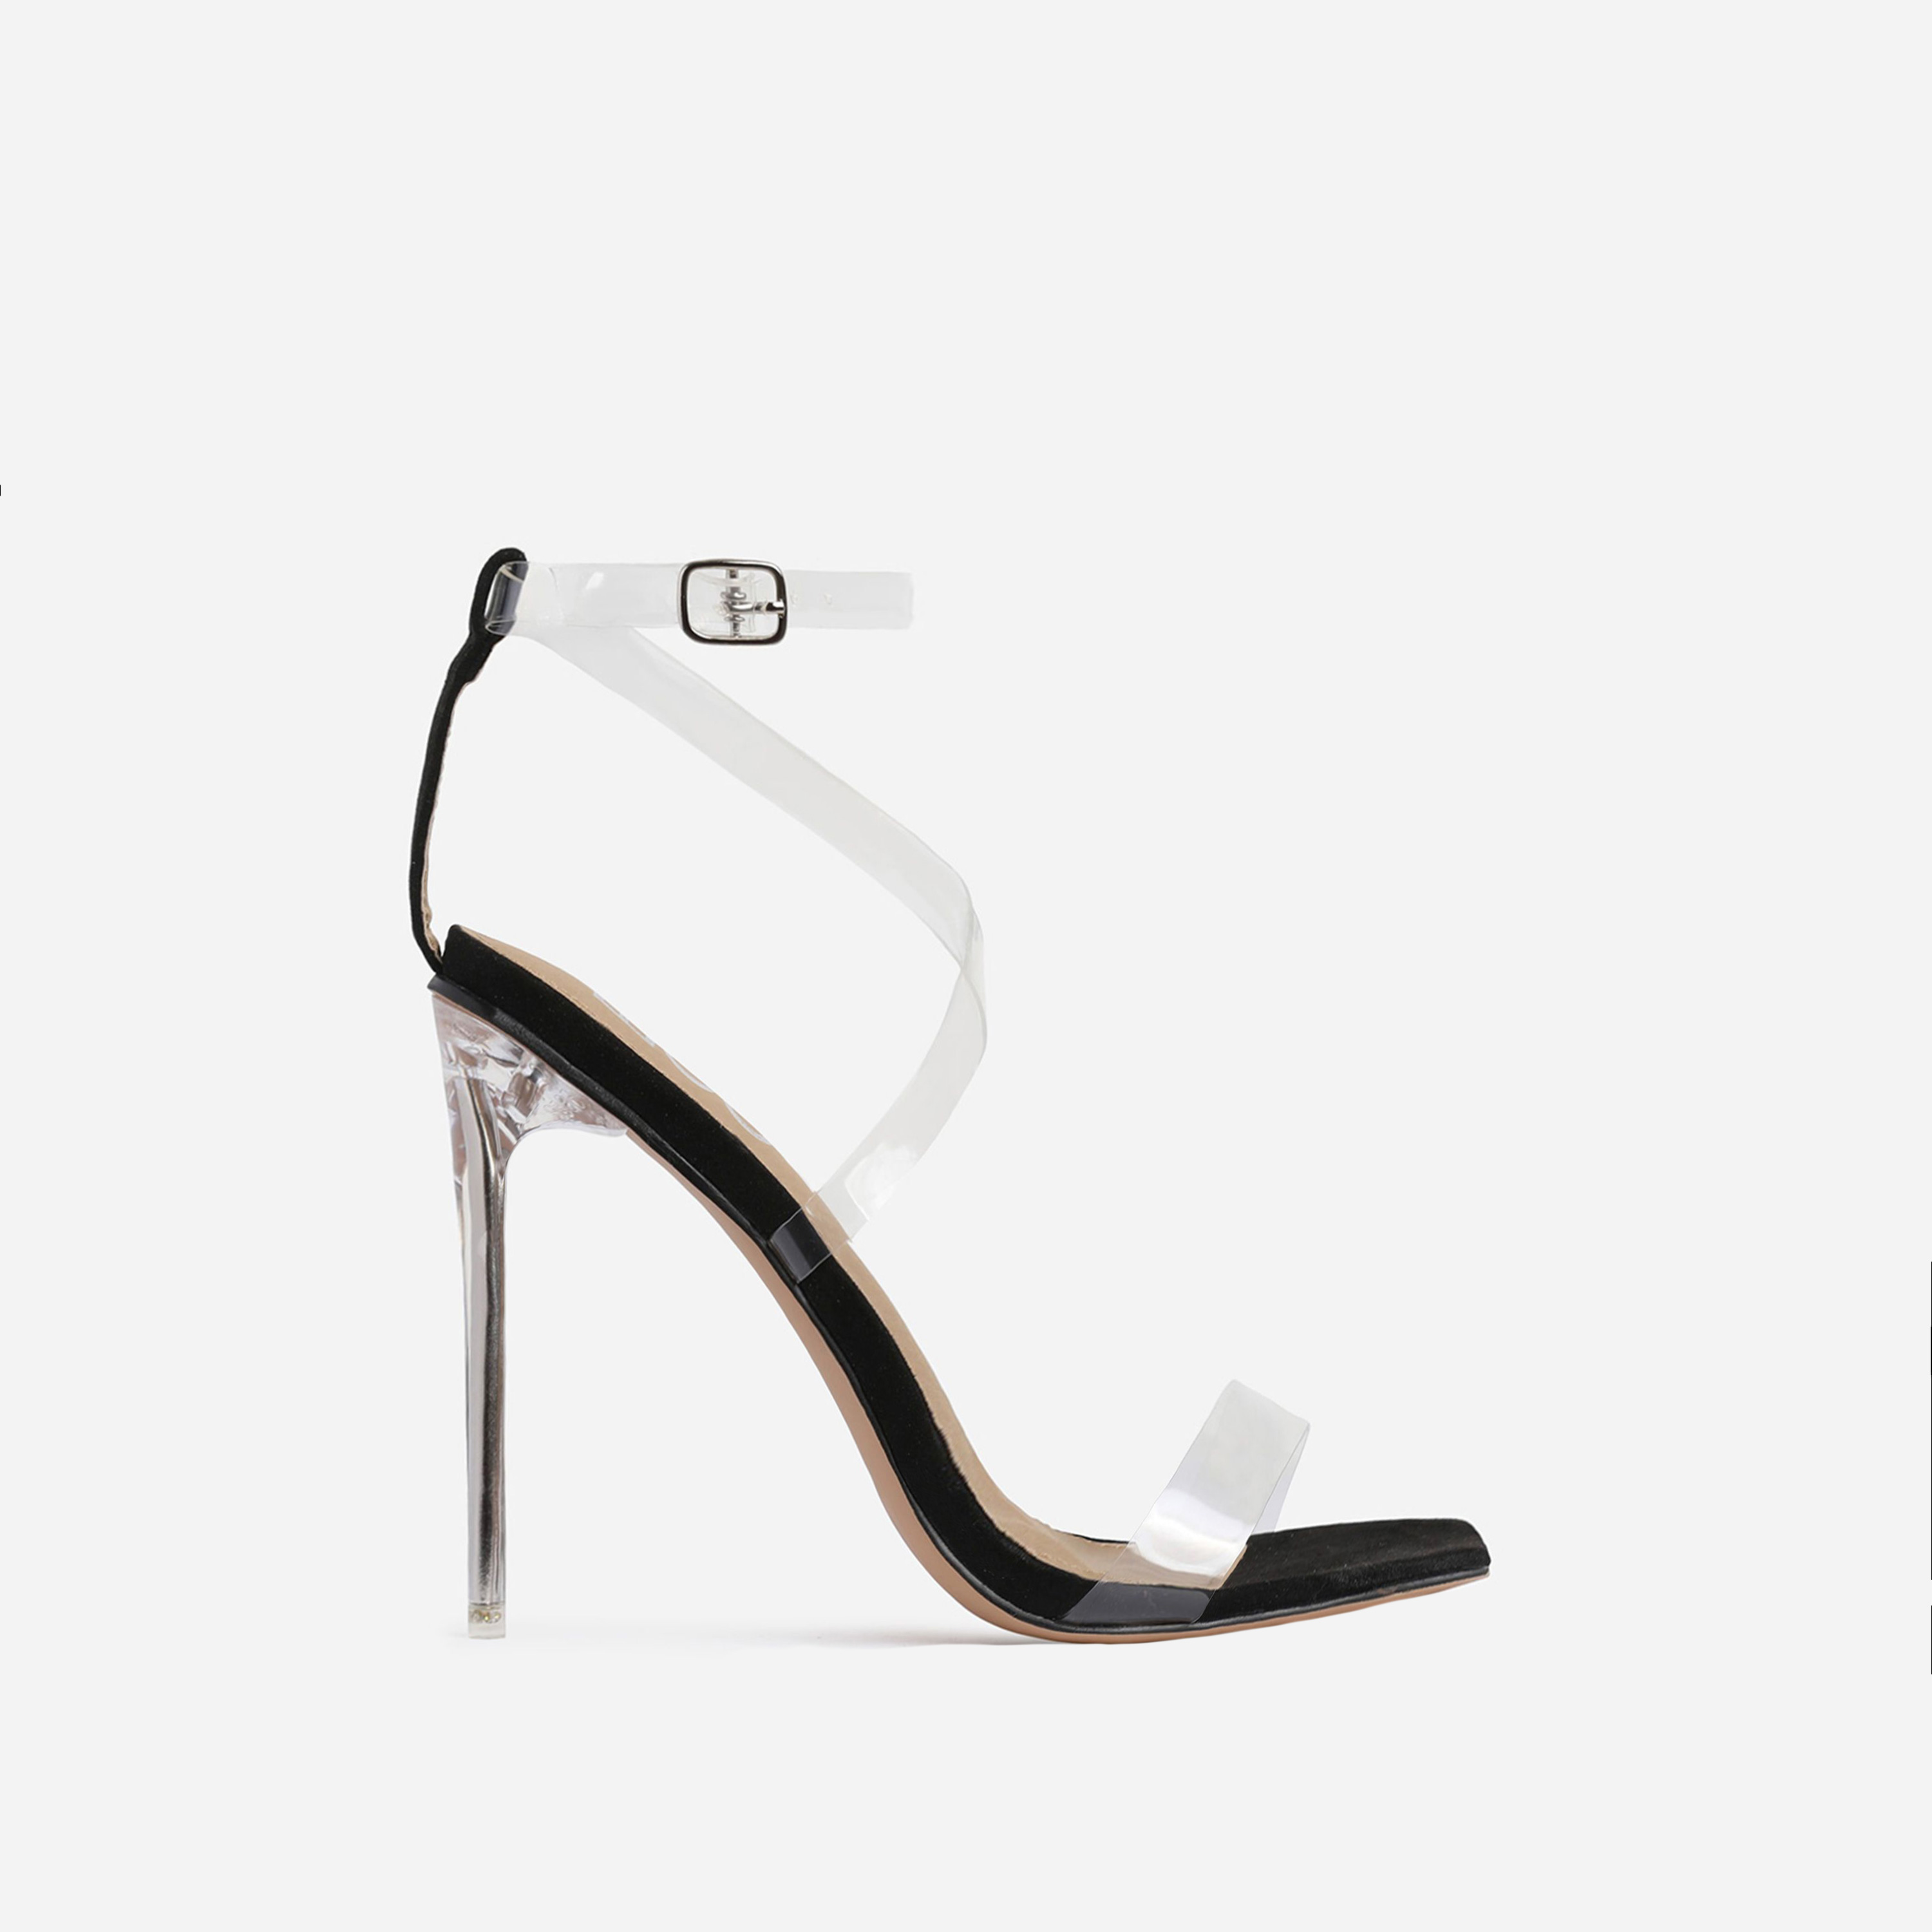 Lance Square Toe Barely There Perspex Heel In Black Faux Suede